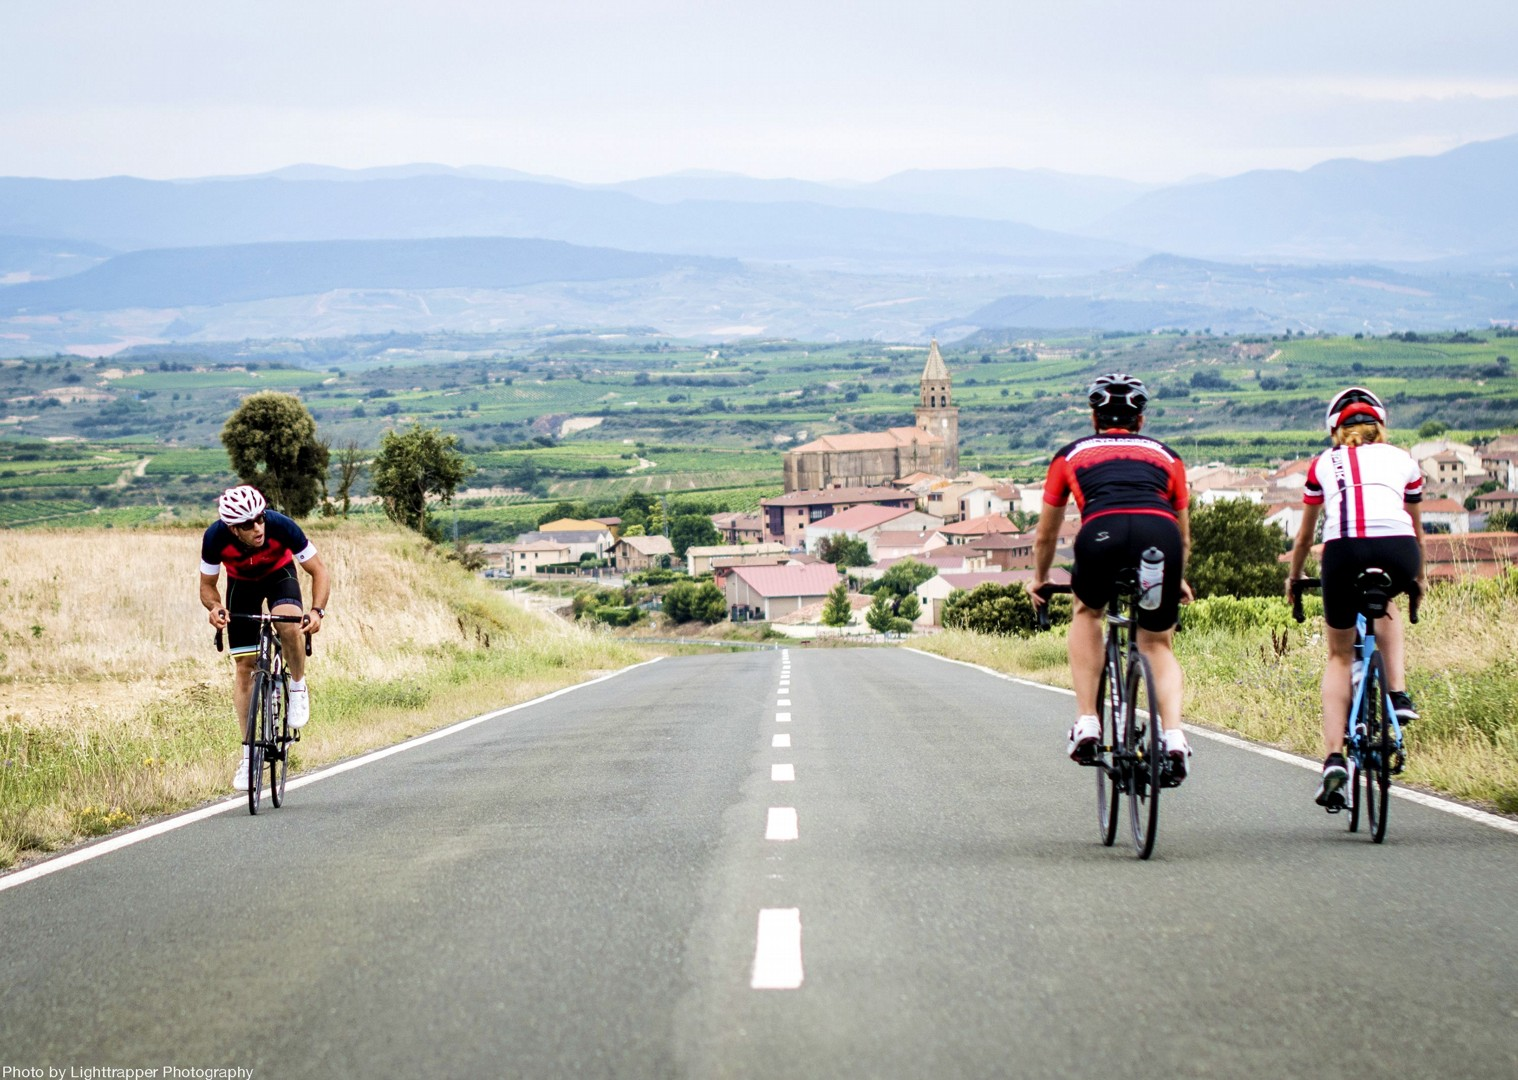 spanish-views-road-cycling-holiday-climbs.jpg - Northern Spain - La Rioja - Ruta del Vino - Self-Guided Road Cycling Holiday - Road Cycling